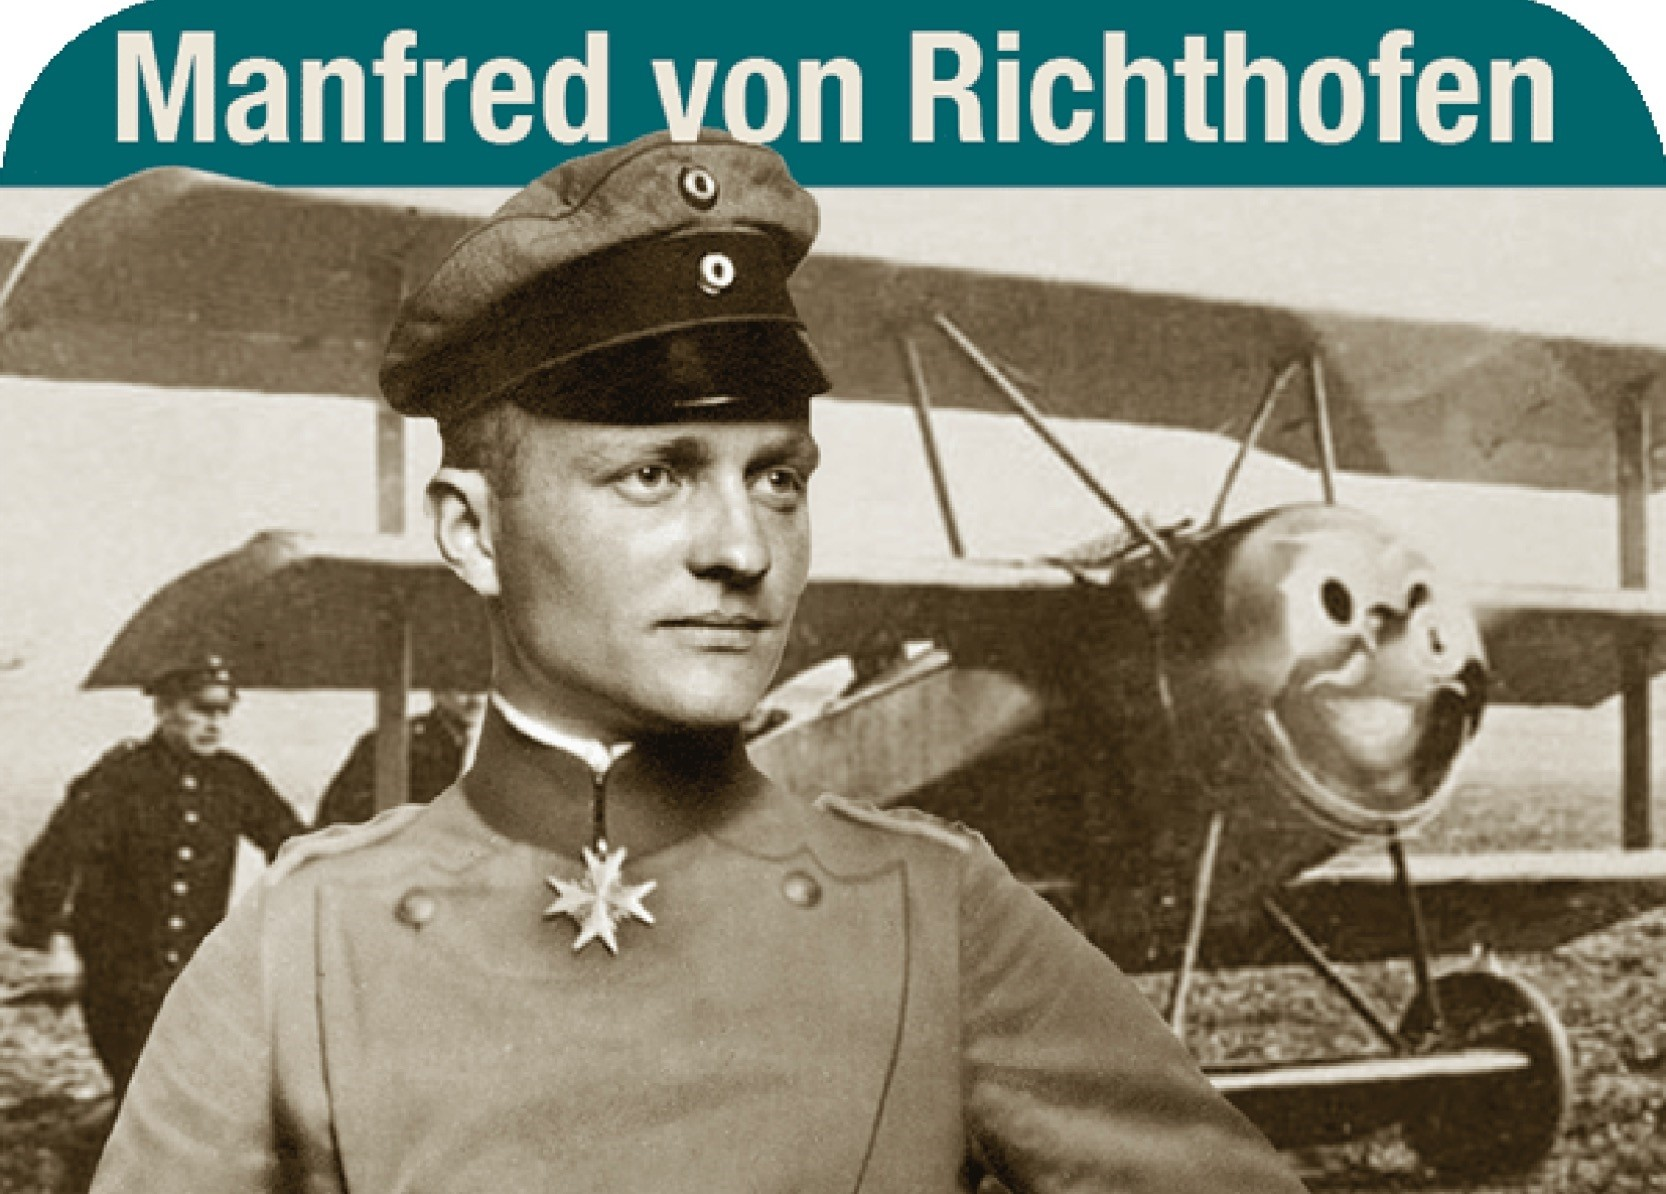 Manfred Freiherr von Richthofen, the legendary German World War I flying ace, was celebrated like a pop star during his lifetime. Today he is cult figure, a label and legend all in one.